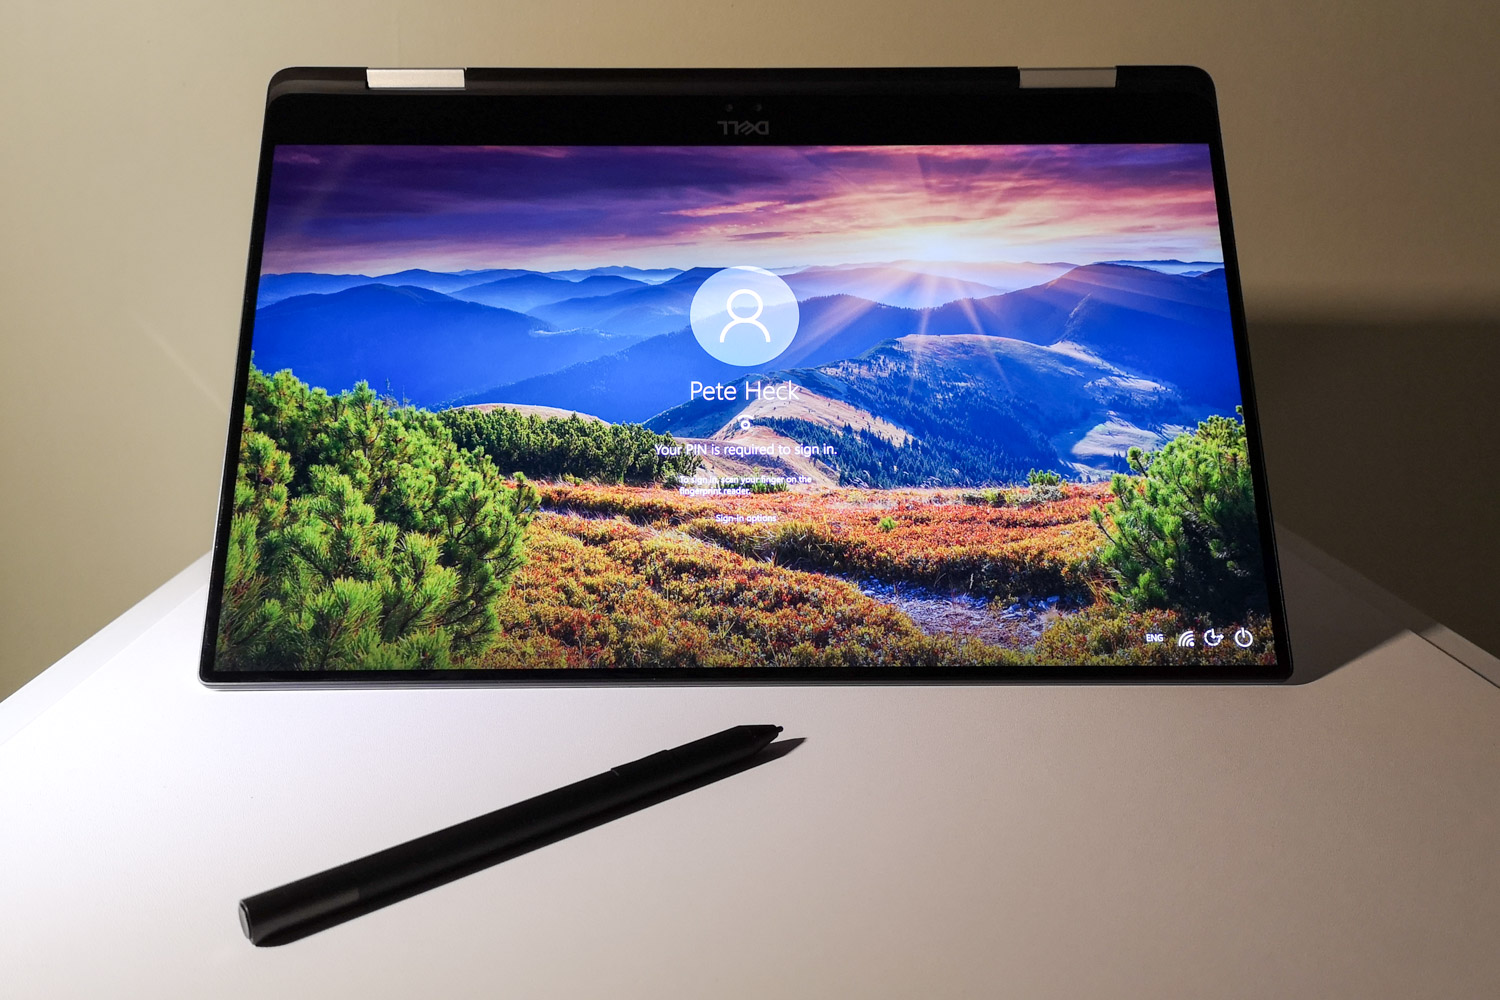 Dell XPS15 2 in 1 Tent Mode